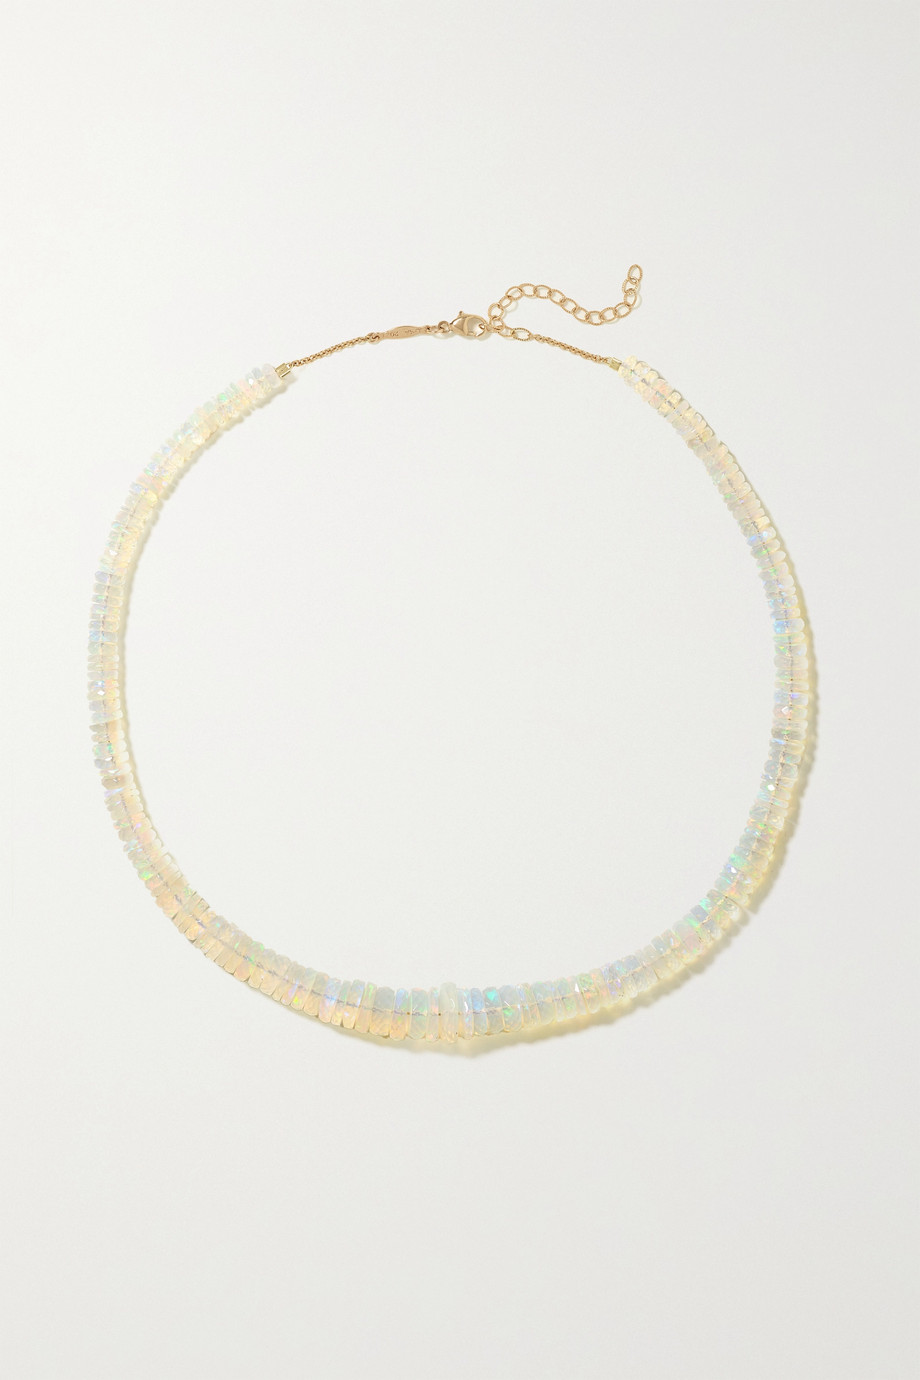 JACQUIE AICHE 14-karat gold opal necklace